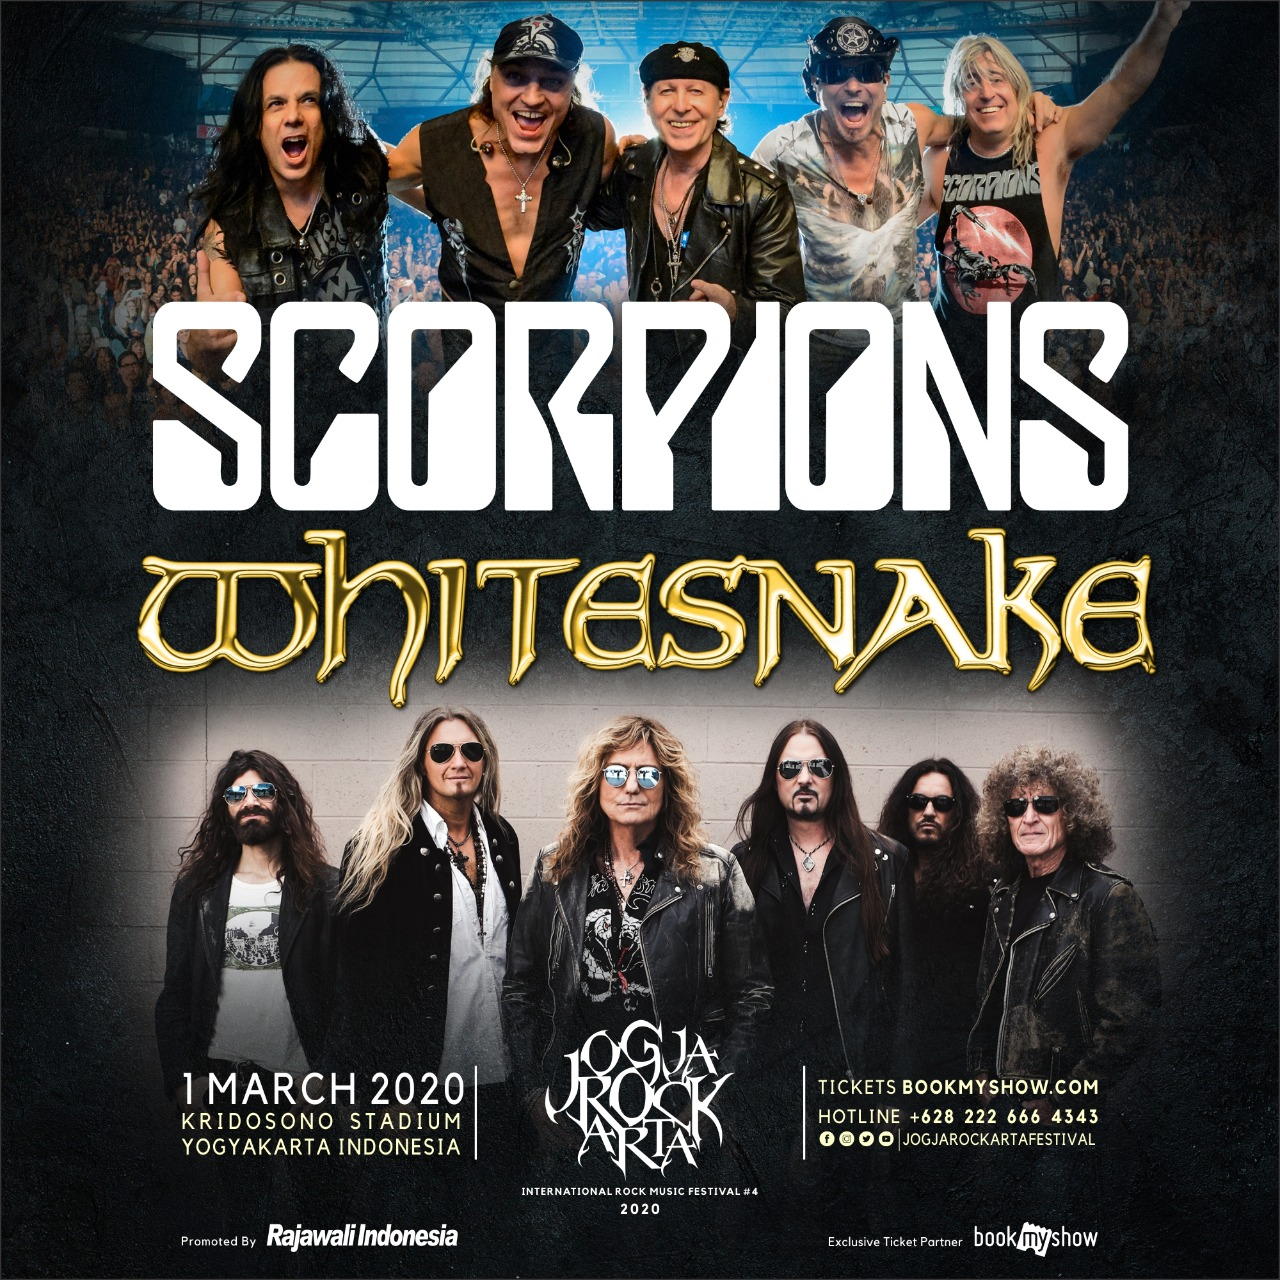 Indonesia Tour Date Added! - Whitesnake Official Site